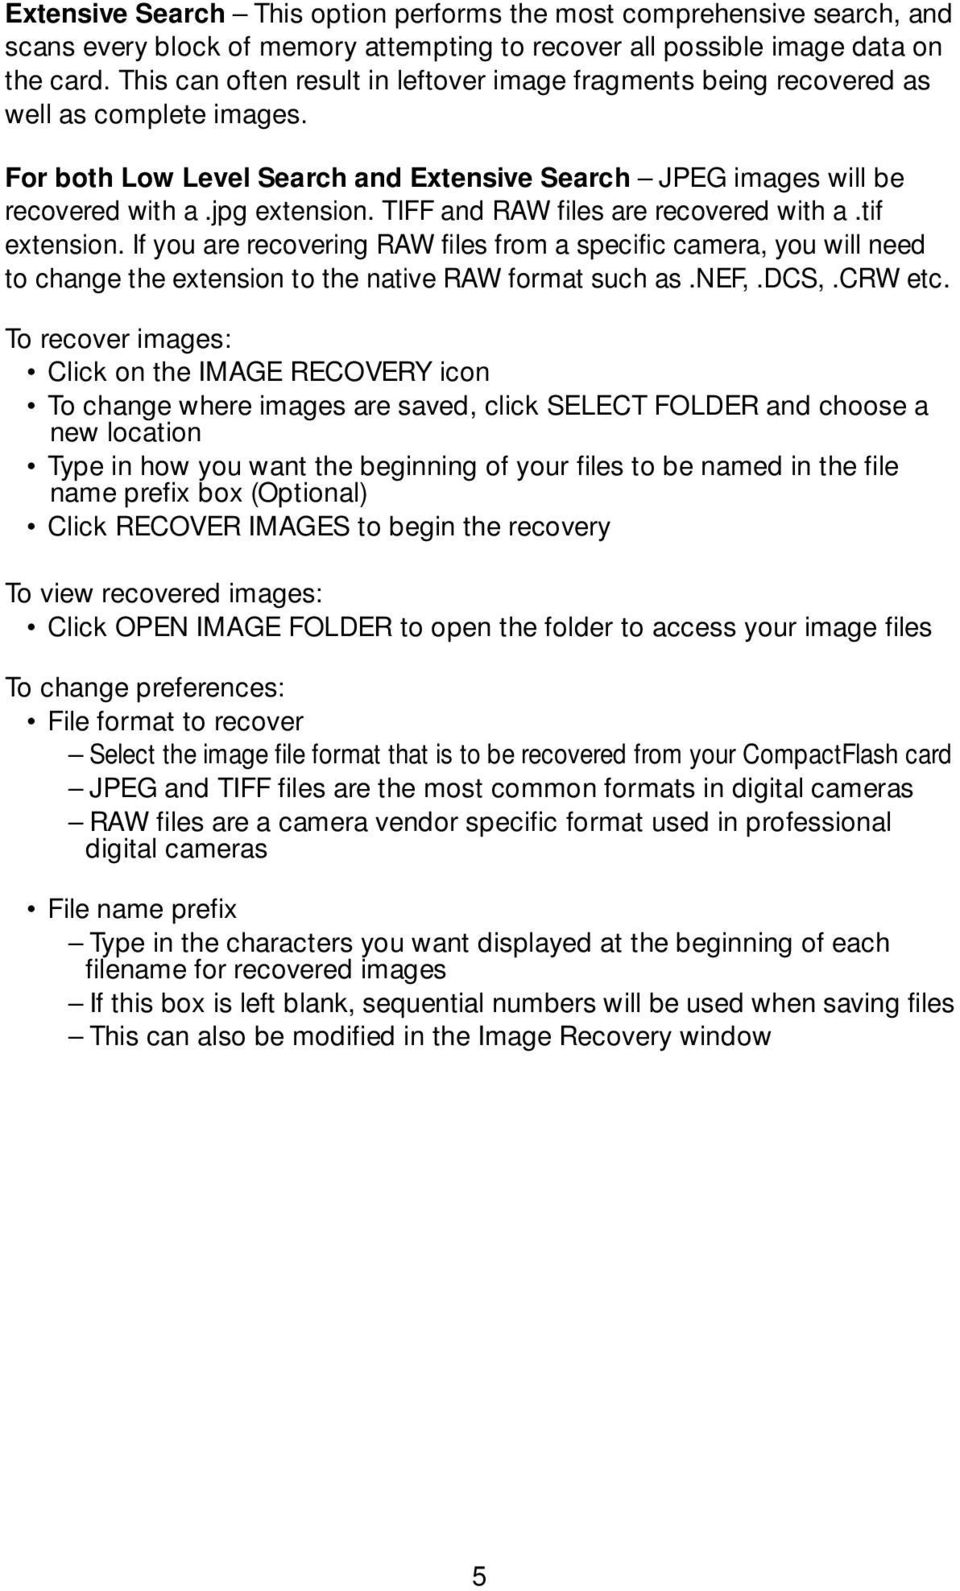 TIFF and RAW files are recovered with a.tif extension. If you are recovering RAW files from a specific camera, you will need to change the extension to the native RAW format such as.nef,.dcs,.crw etc.